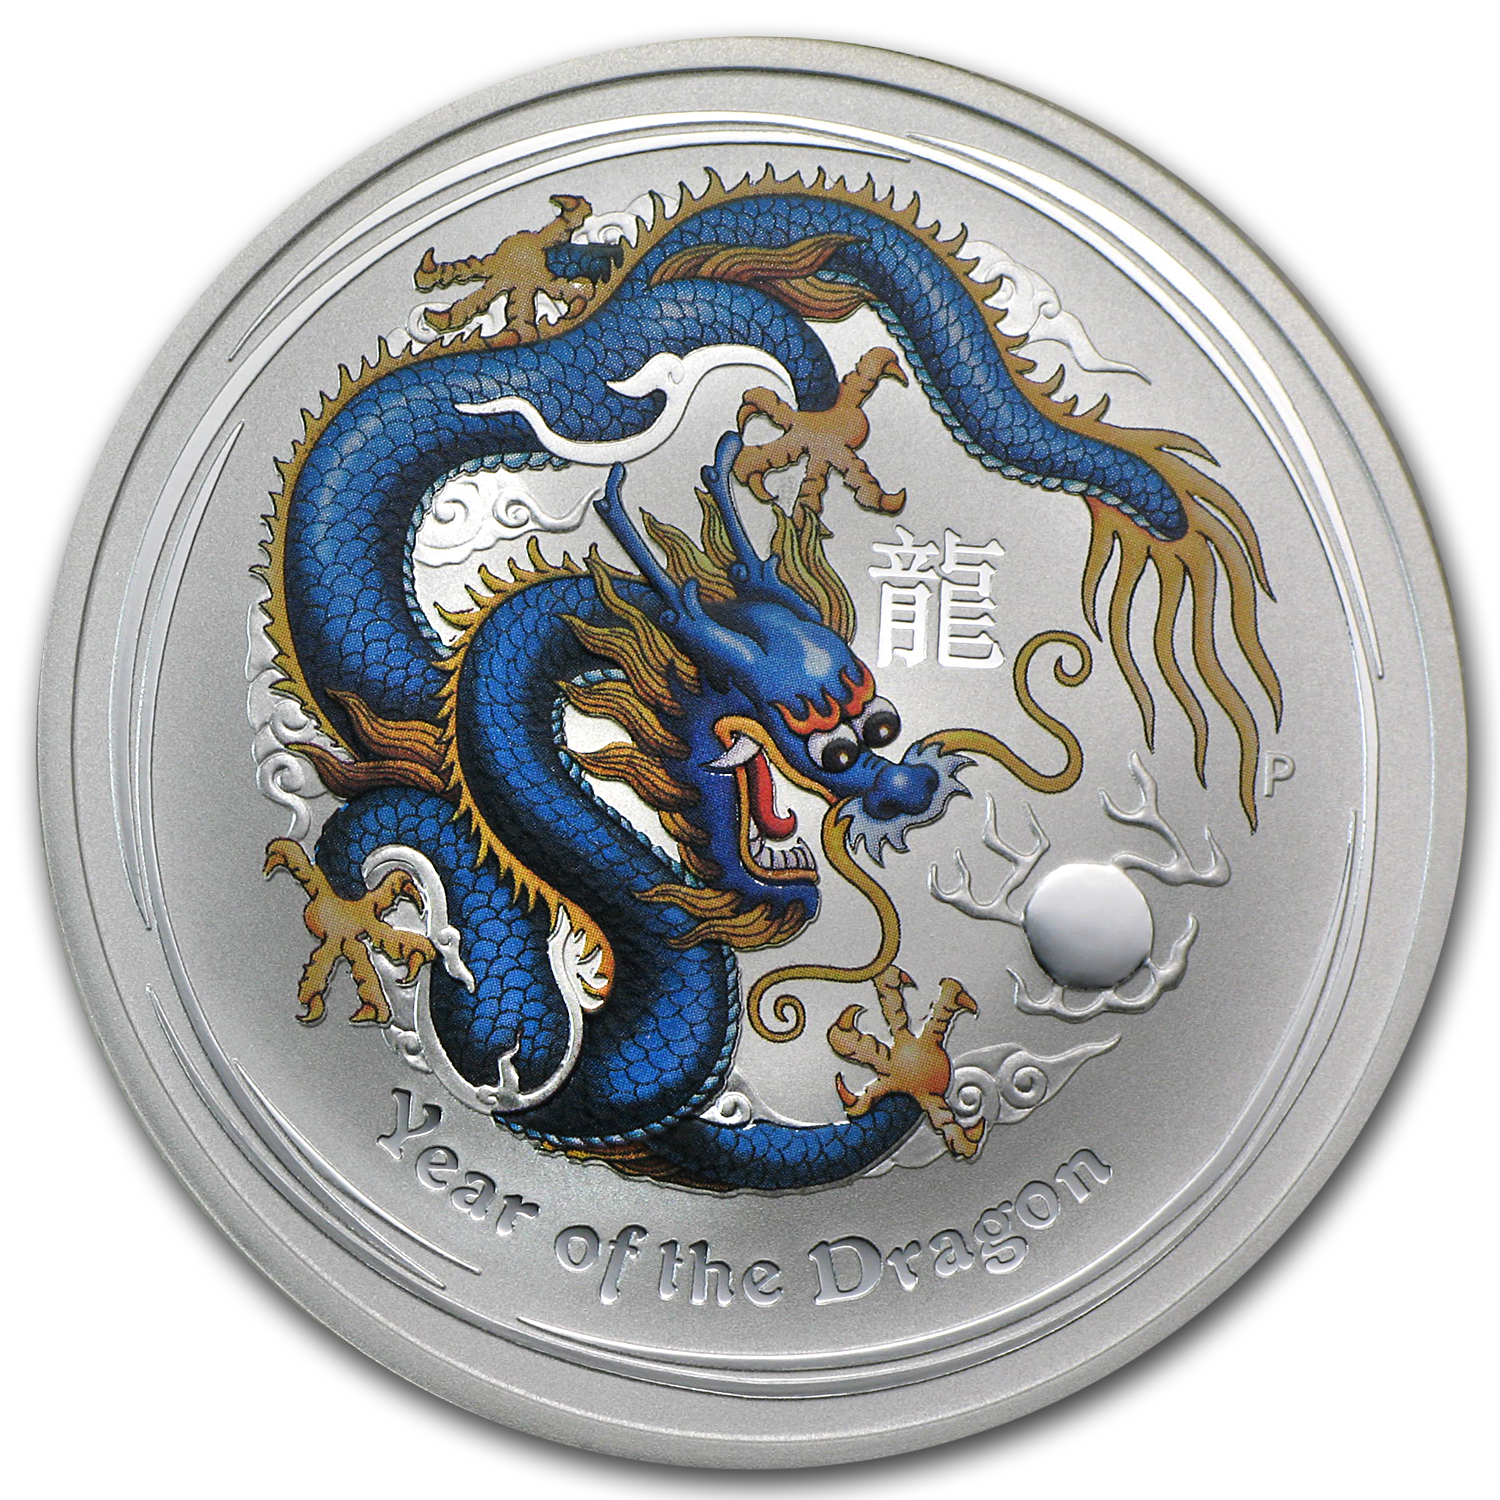 2012 1 oz Silver Australian Dragon BU (Blue Colorized)